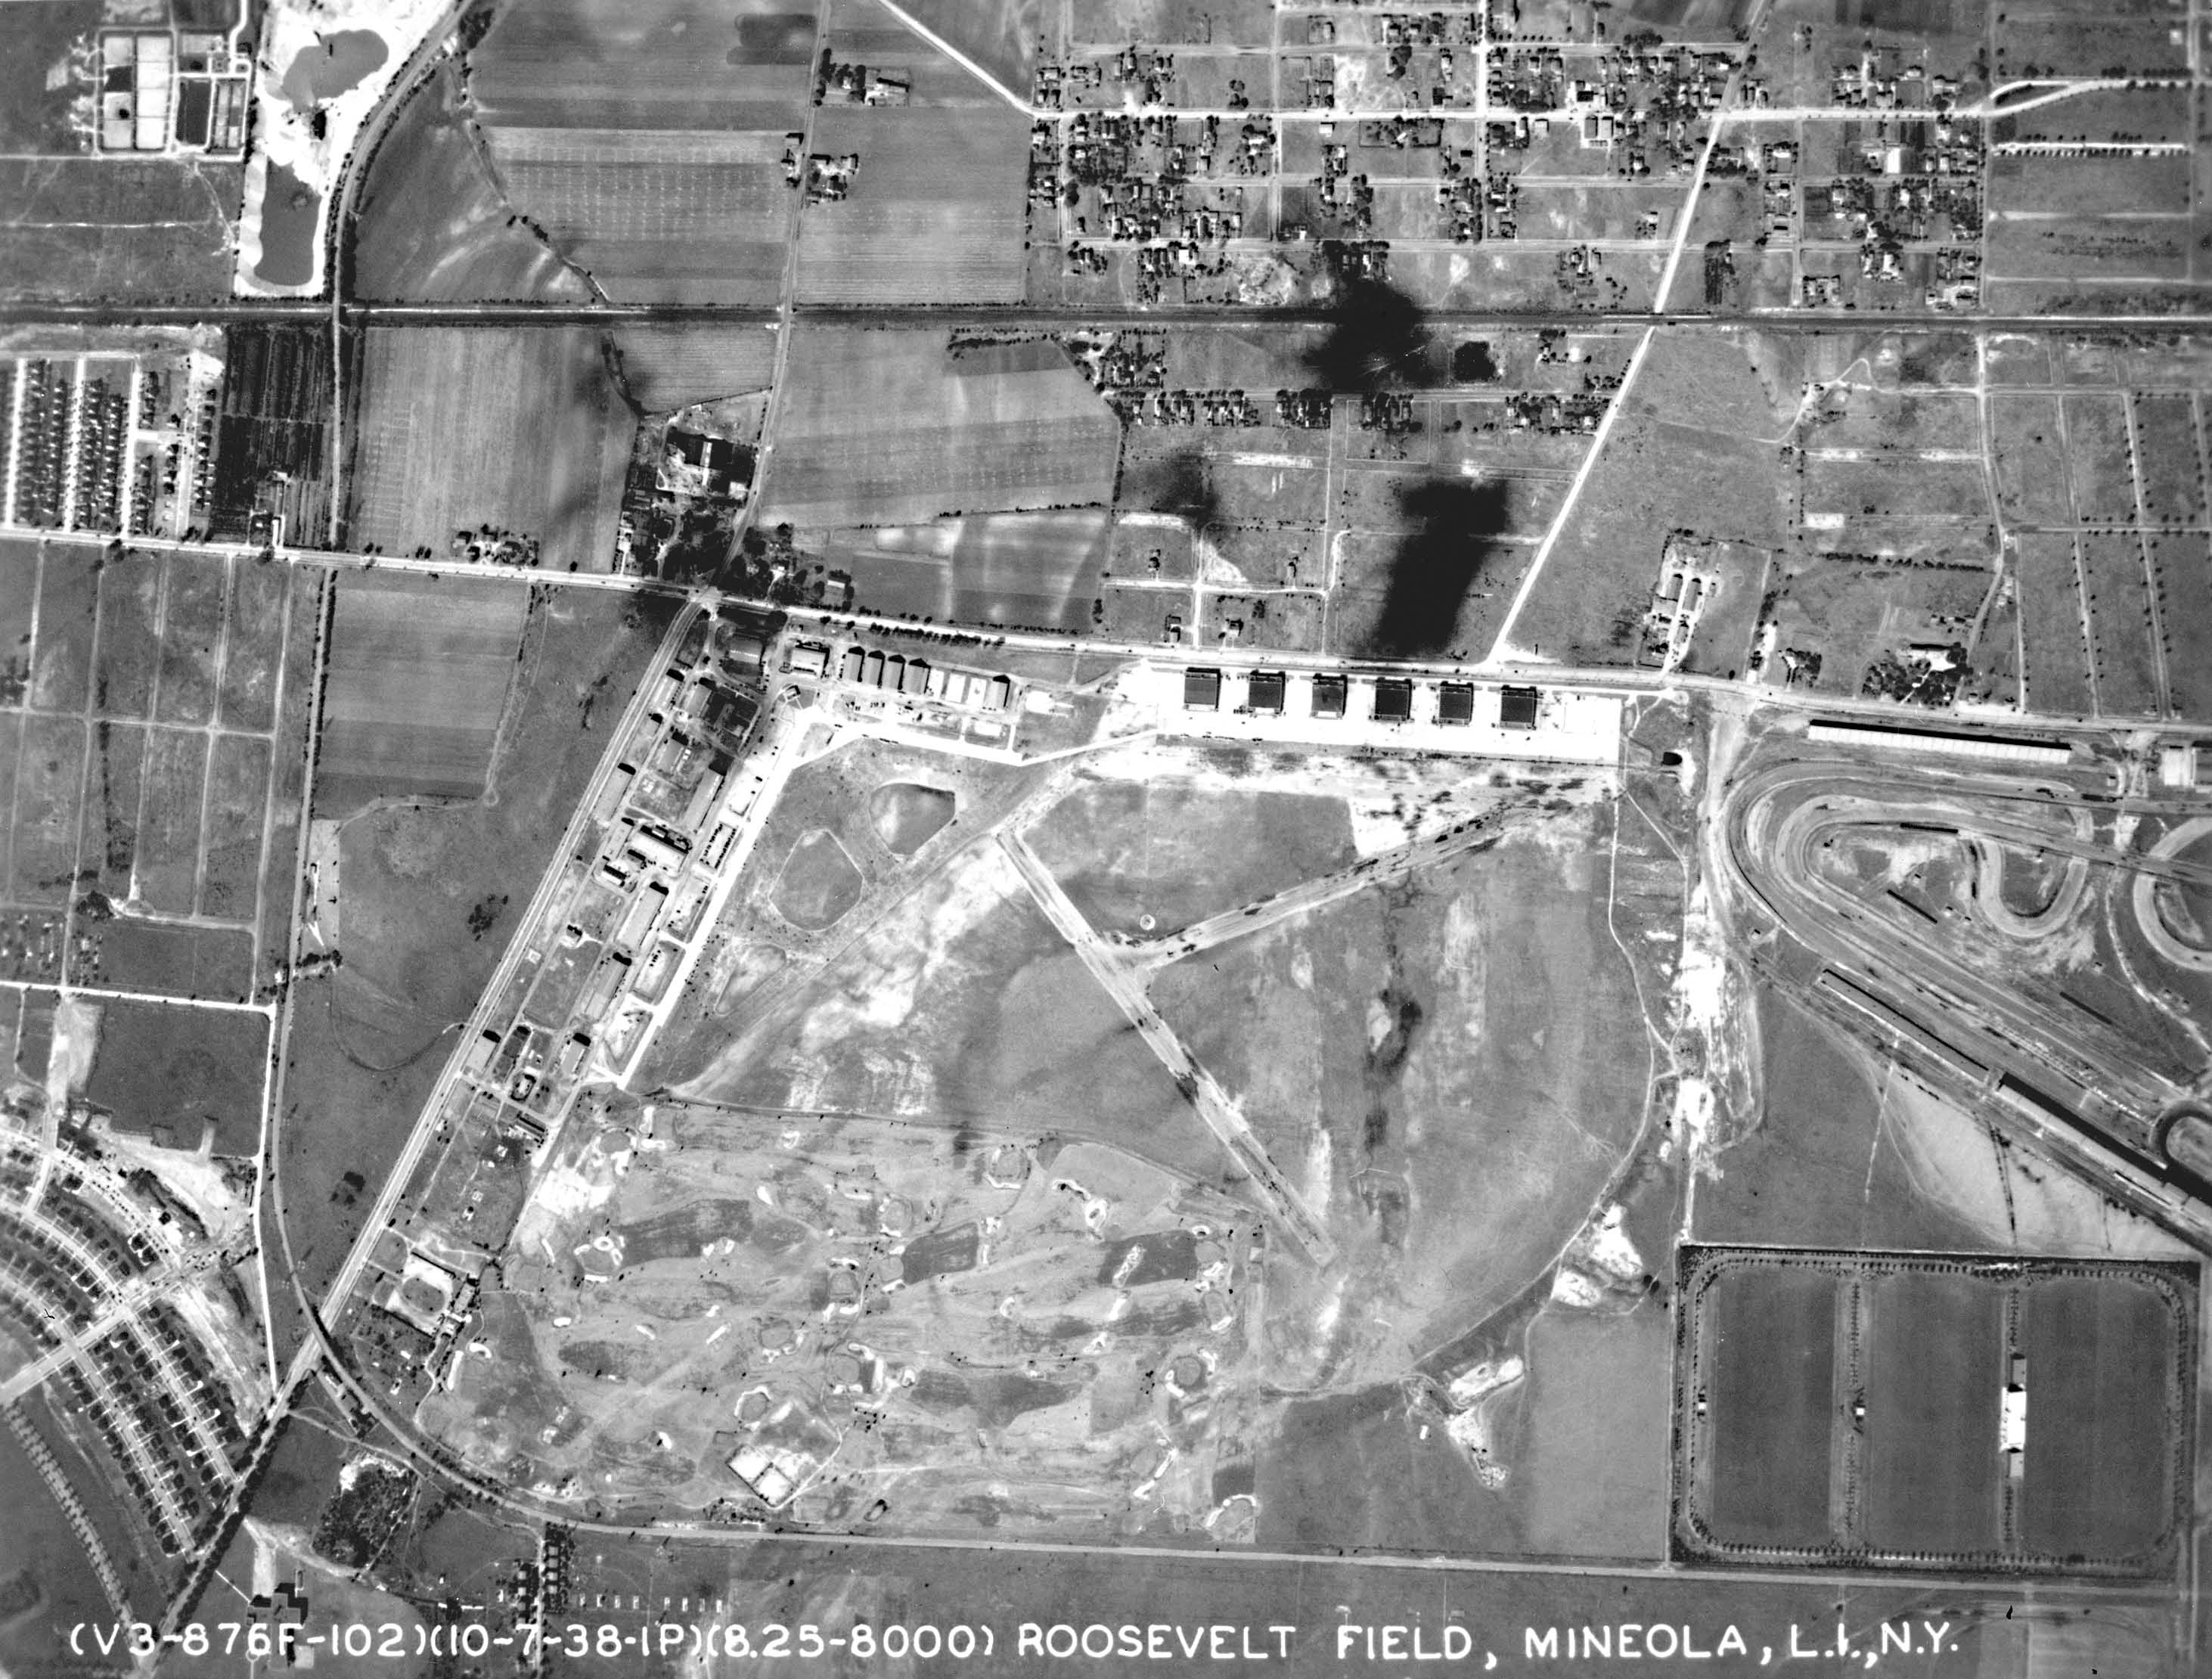 Vanderbilt cup races blog mystery foto 82 solved aerial view of mitchel field and for Roosevelt field garden city ny